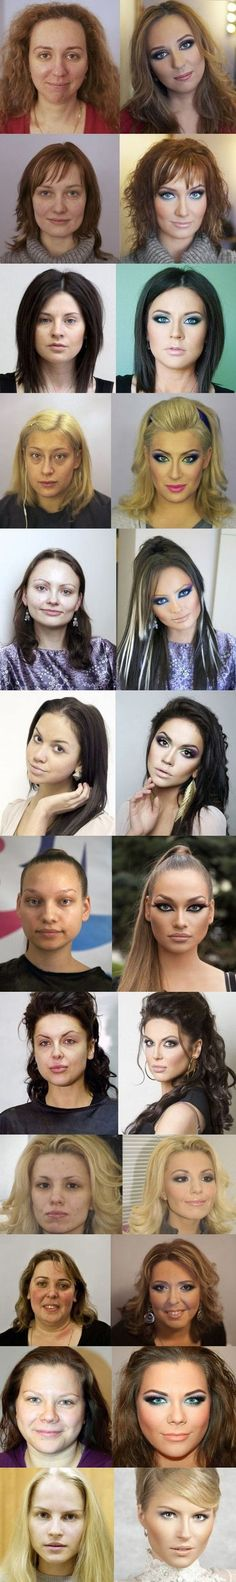 Russian Make Up - Before and After ... Amazing! So don't be discouraged if you don't look like the second pictures, these people don't look like them either.